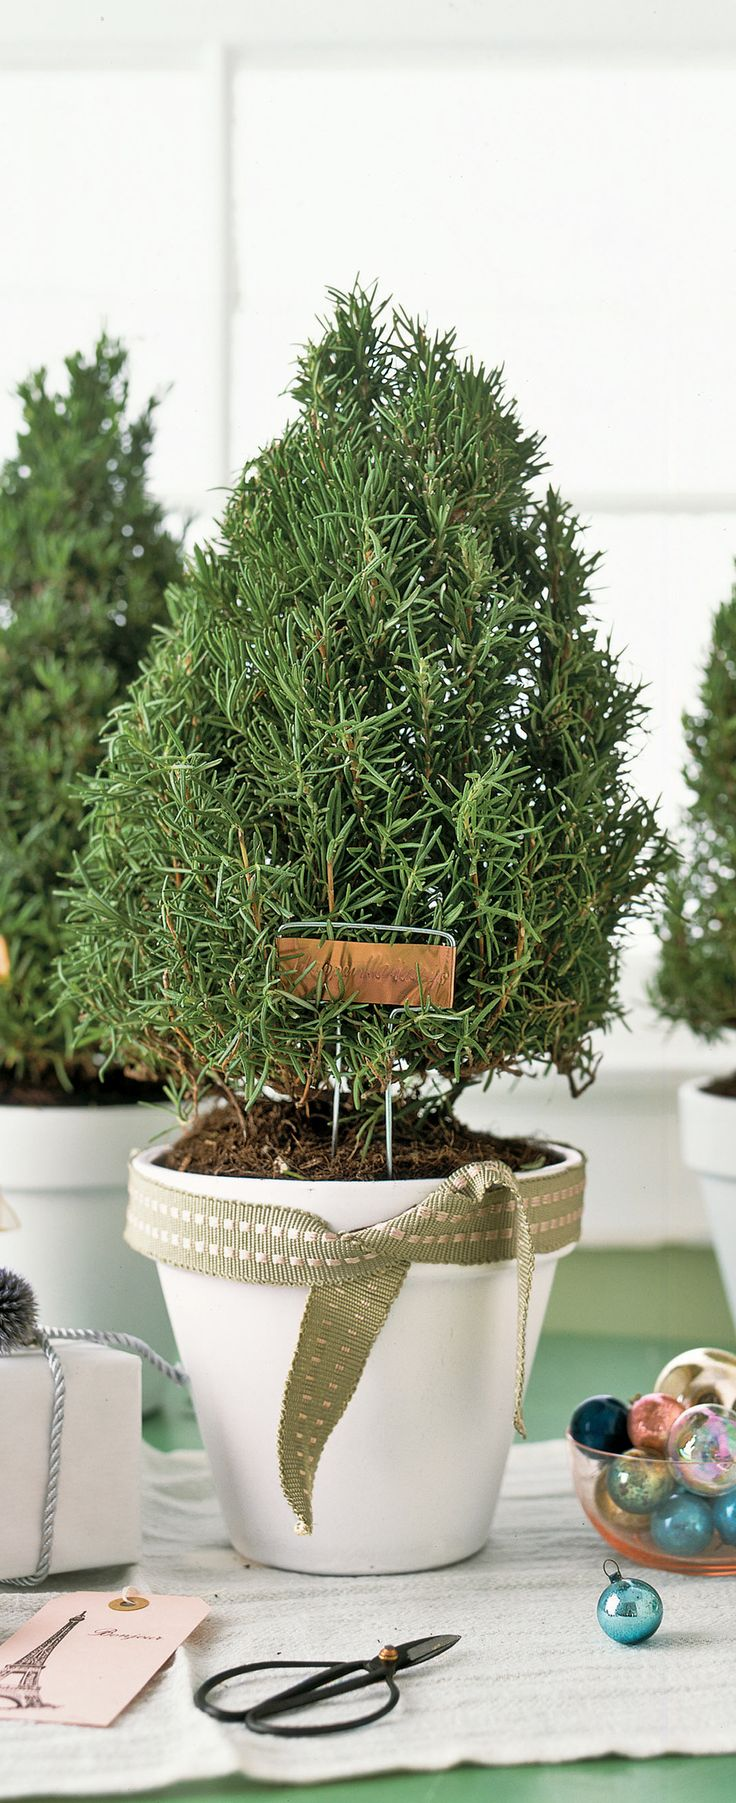 Best 25+ Rosemary plant ideas on Pinterest | Rosemary garden ...